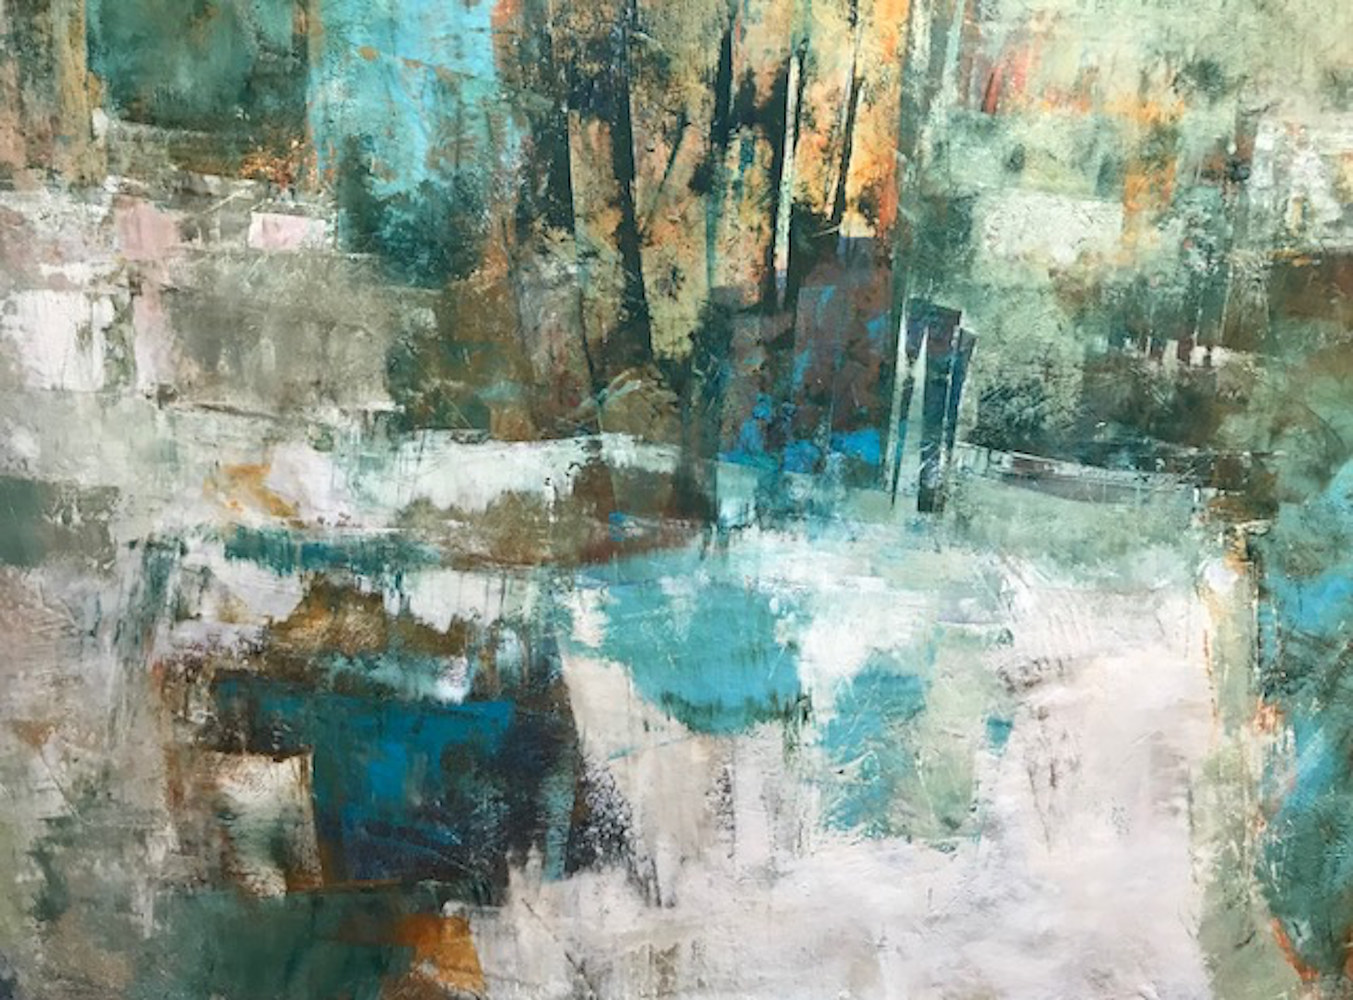 Oil painting Landscape of Memory II_oil & cold wax_24x30 by Eloise Shelton-mayo